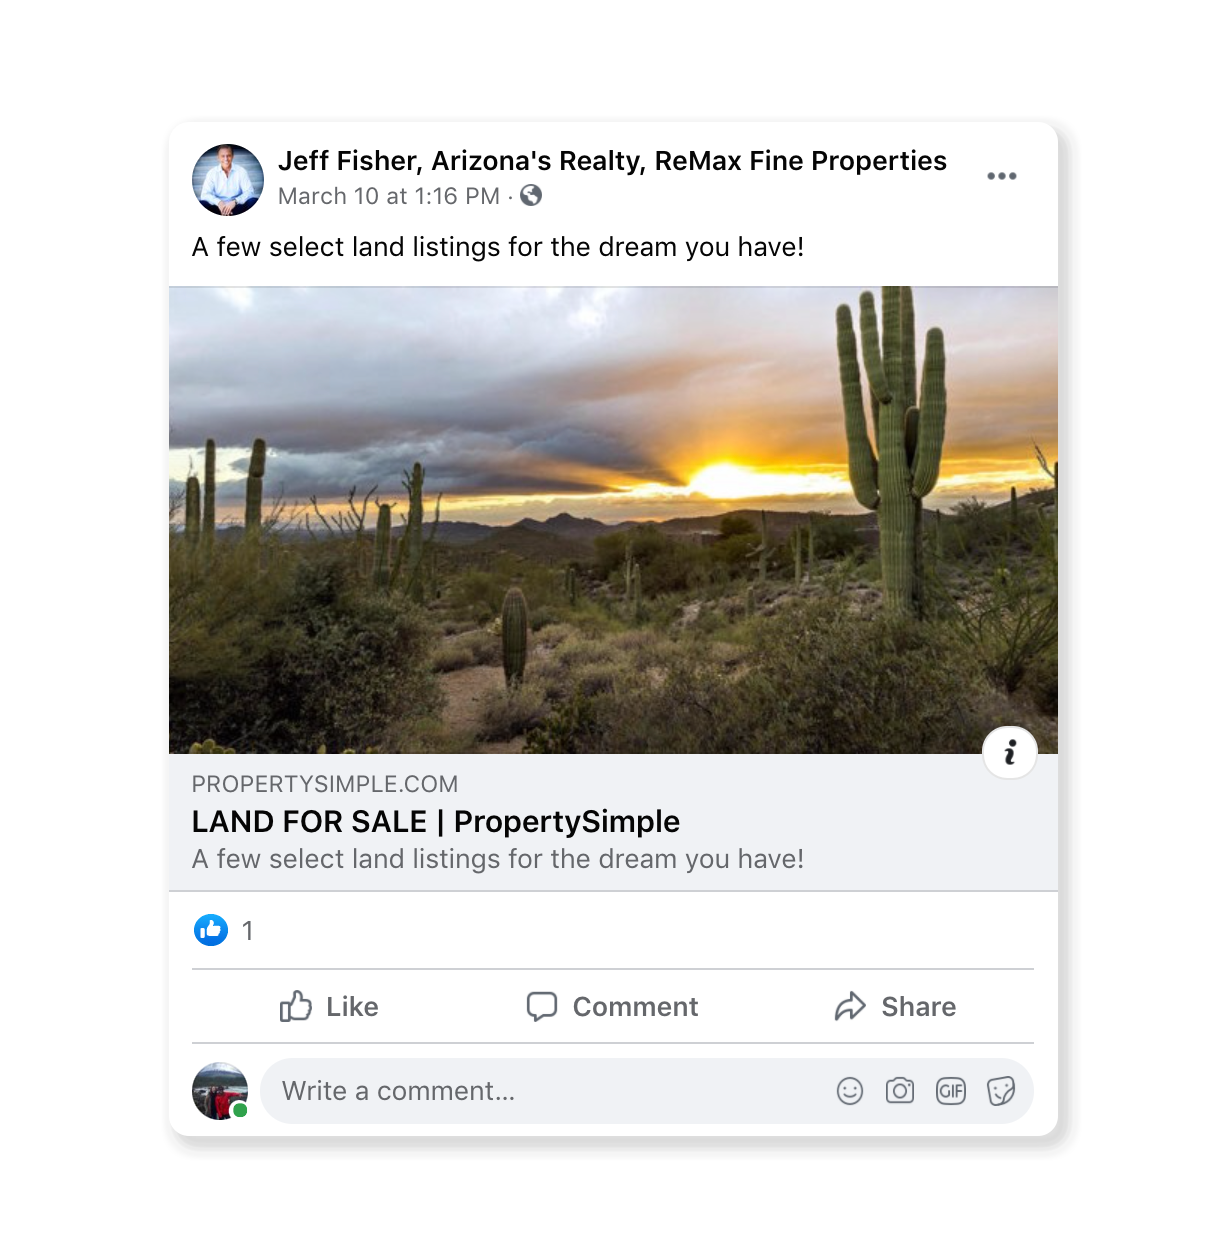 social media post by a real estate agent that showcases land for sale in Arizona